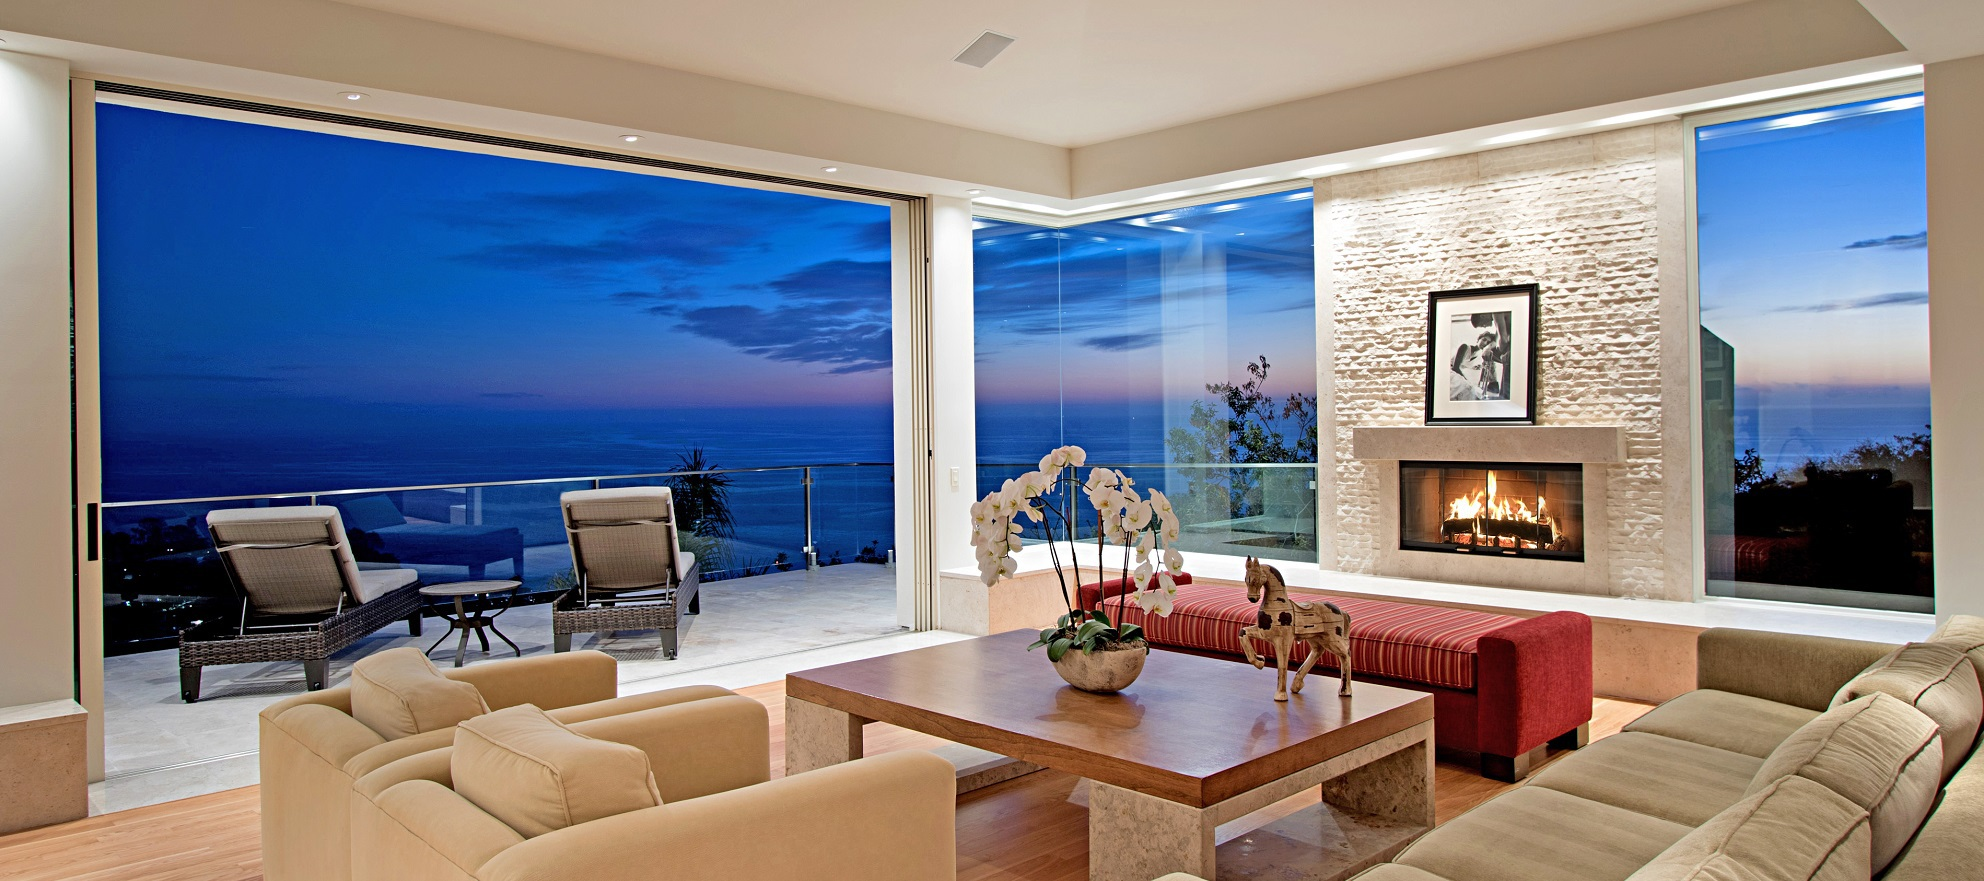 Luxury listing: custom home with unmatched ocean views